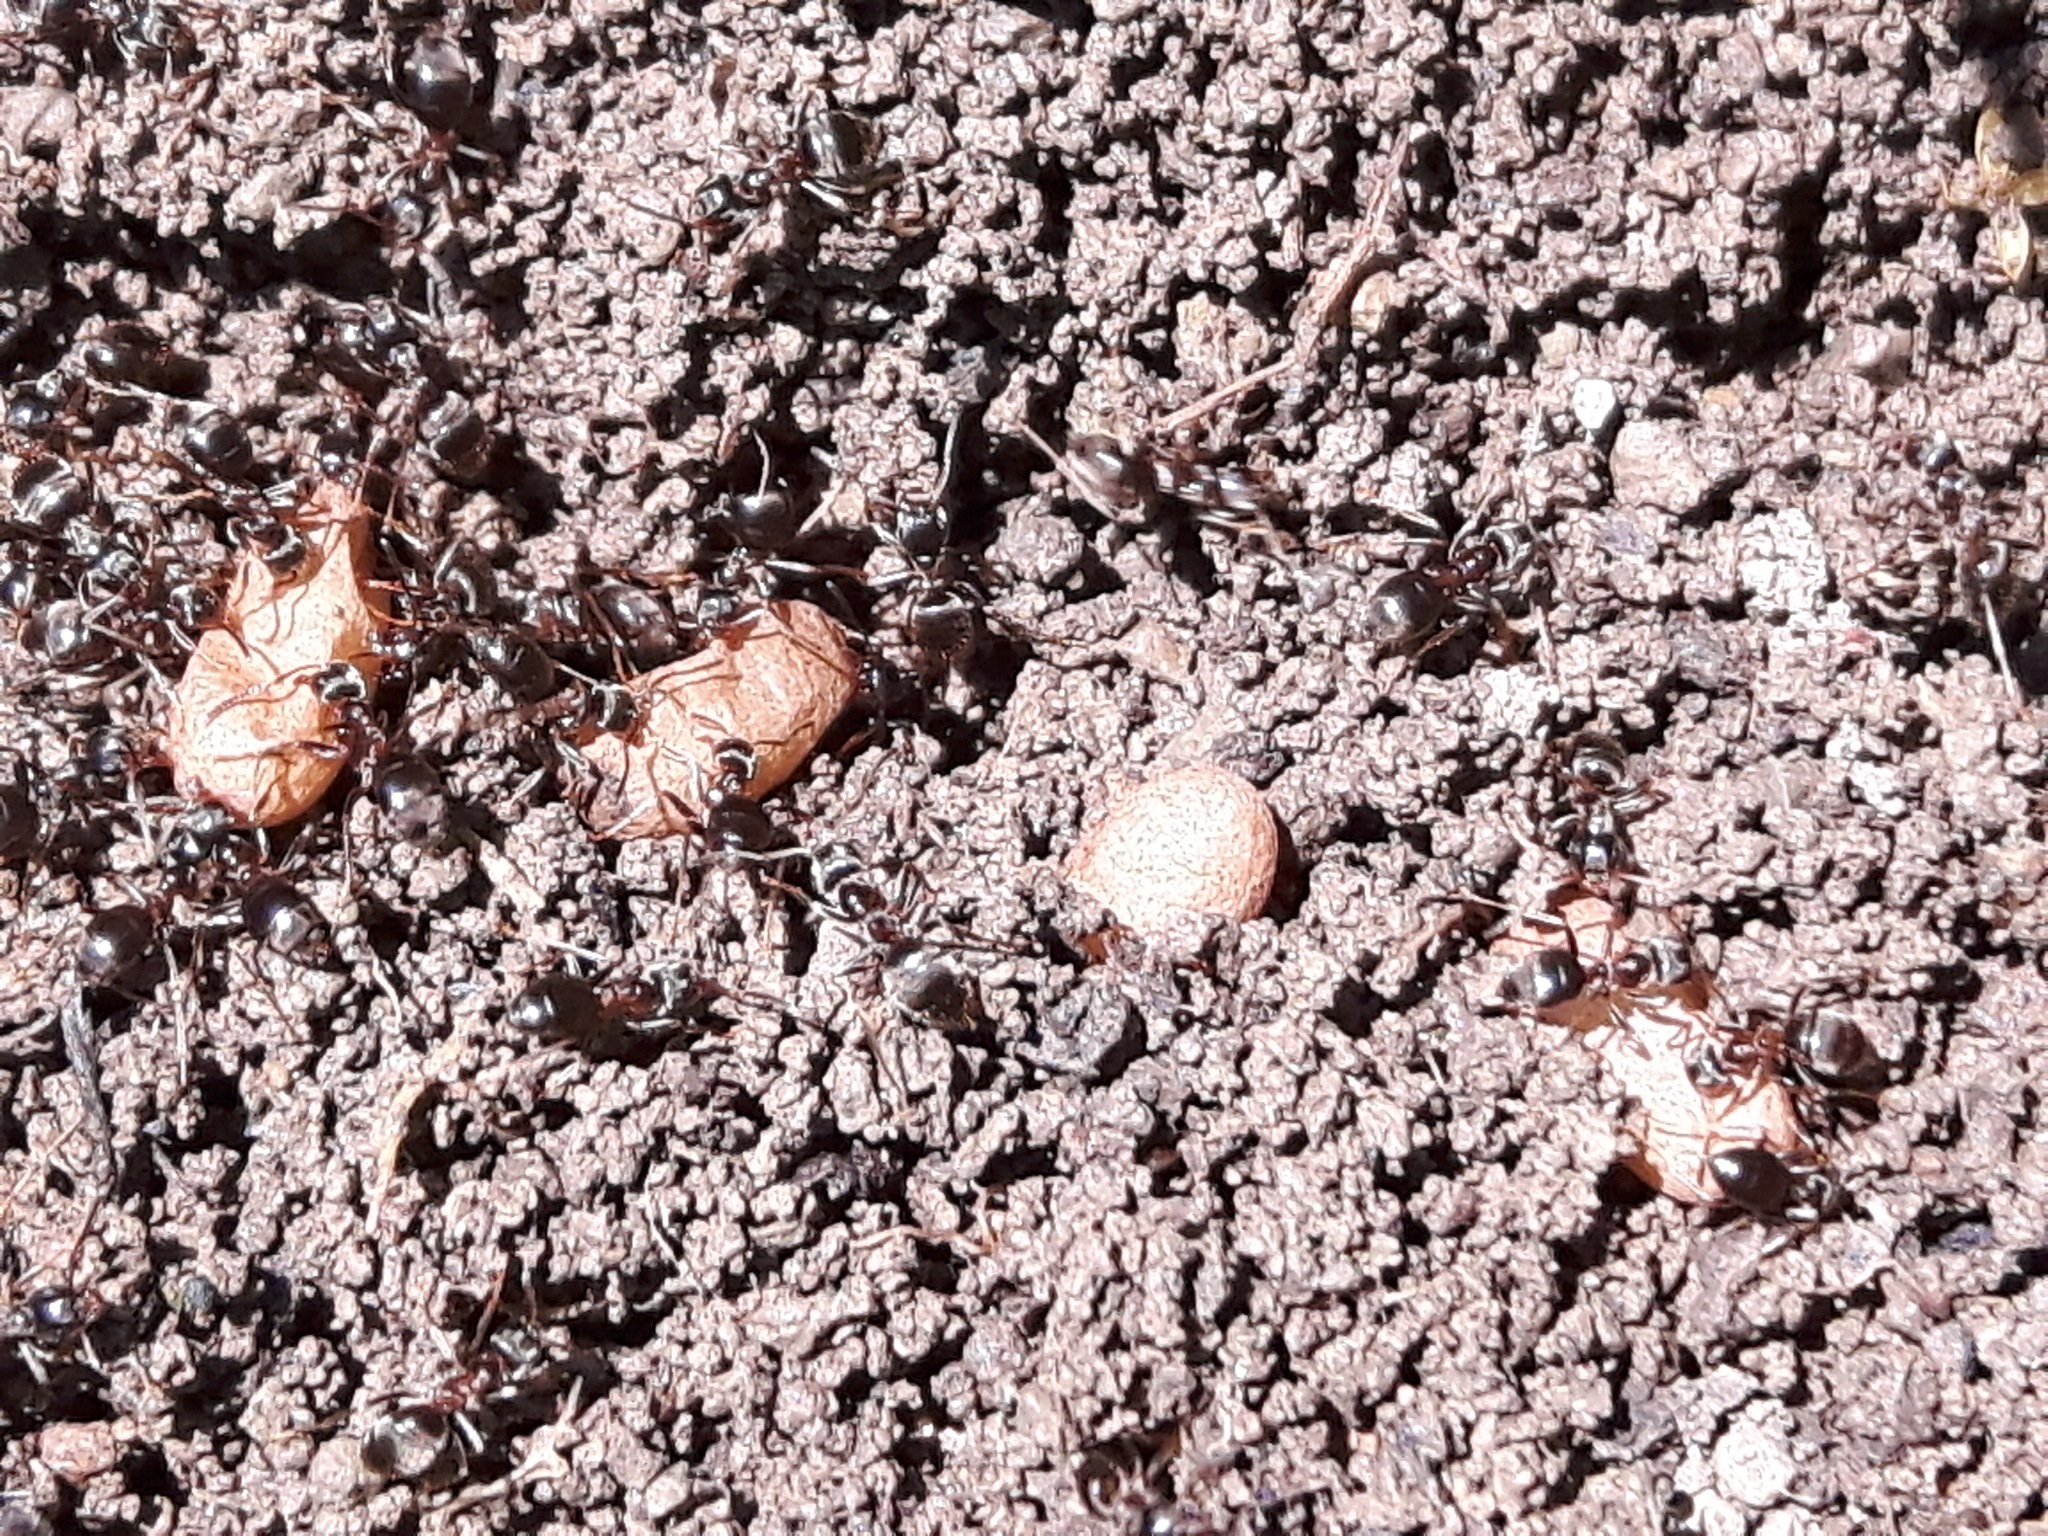 Ants and eggs by Mevludin_Hasanovic